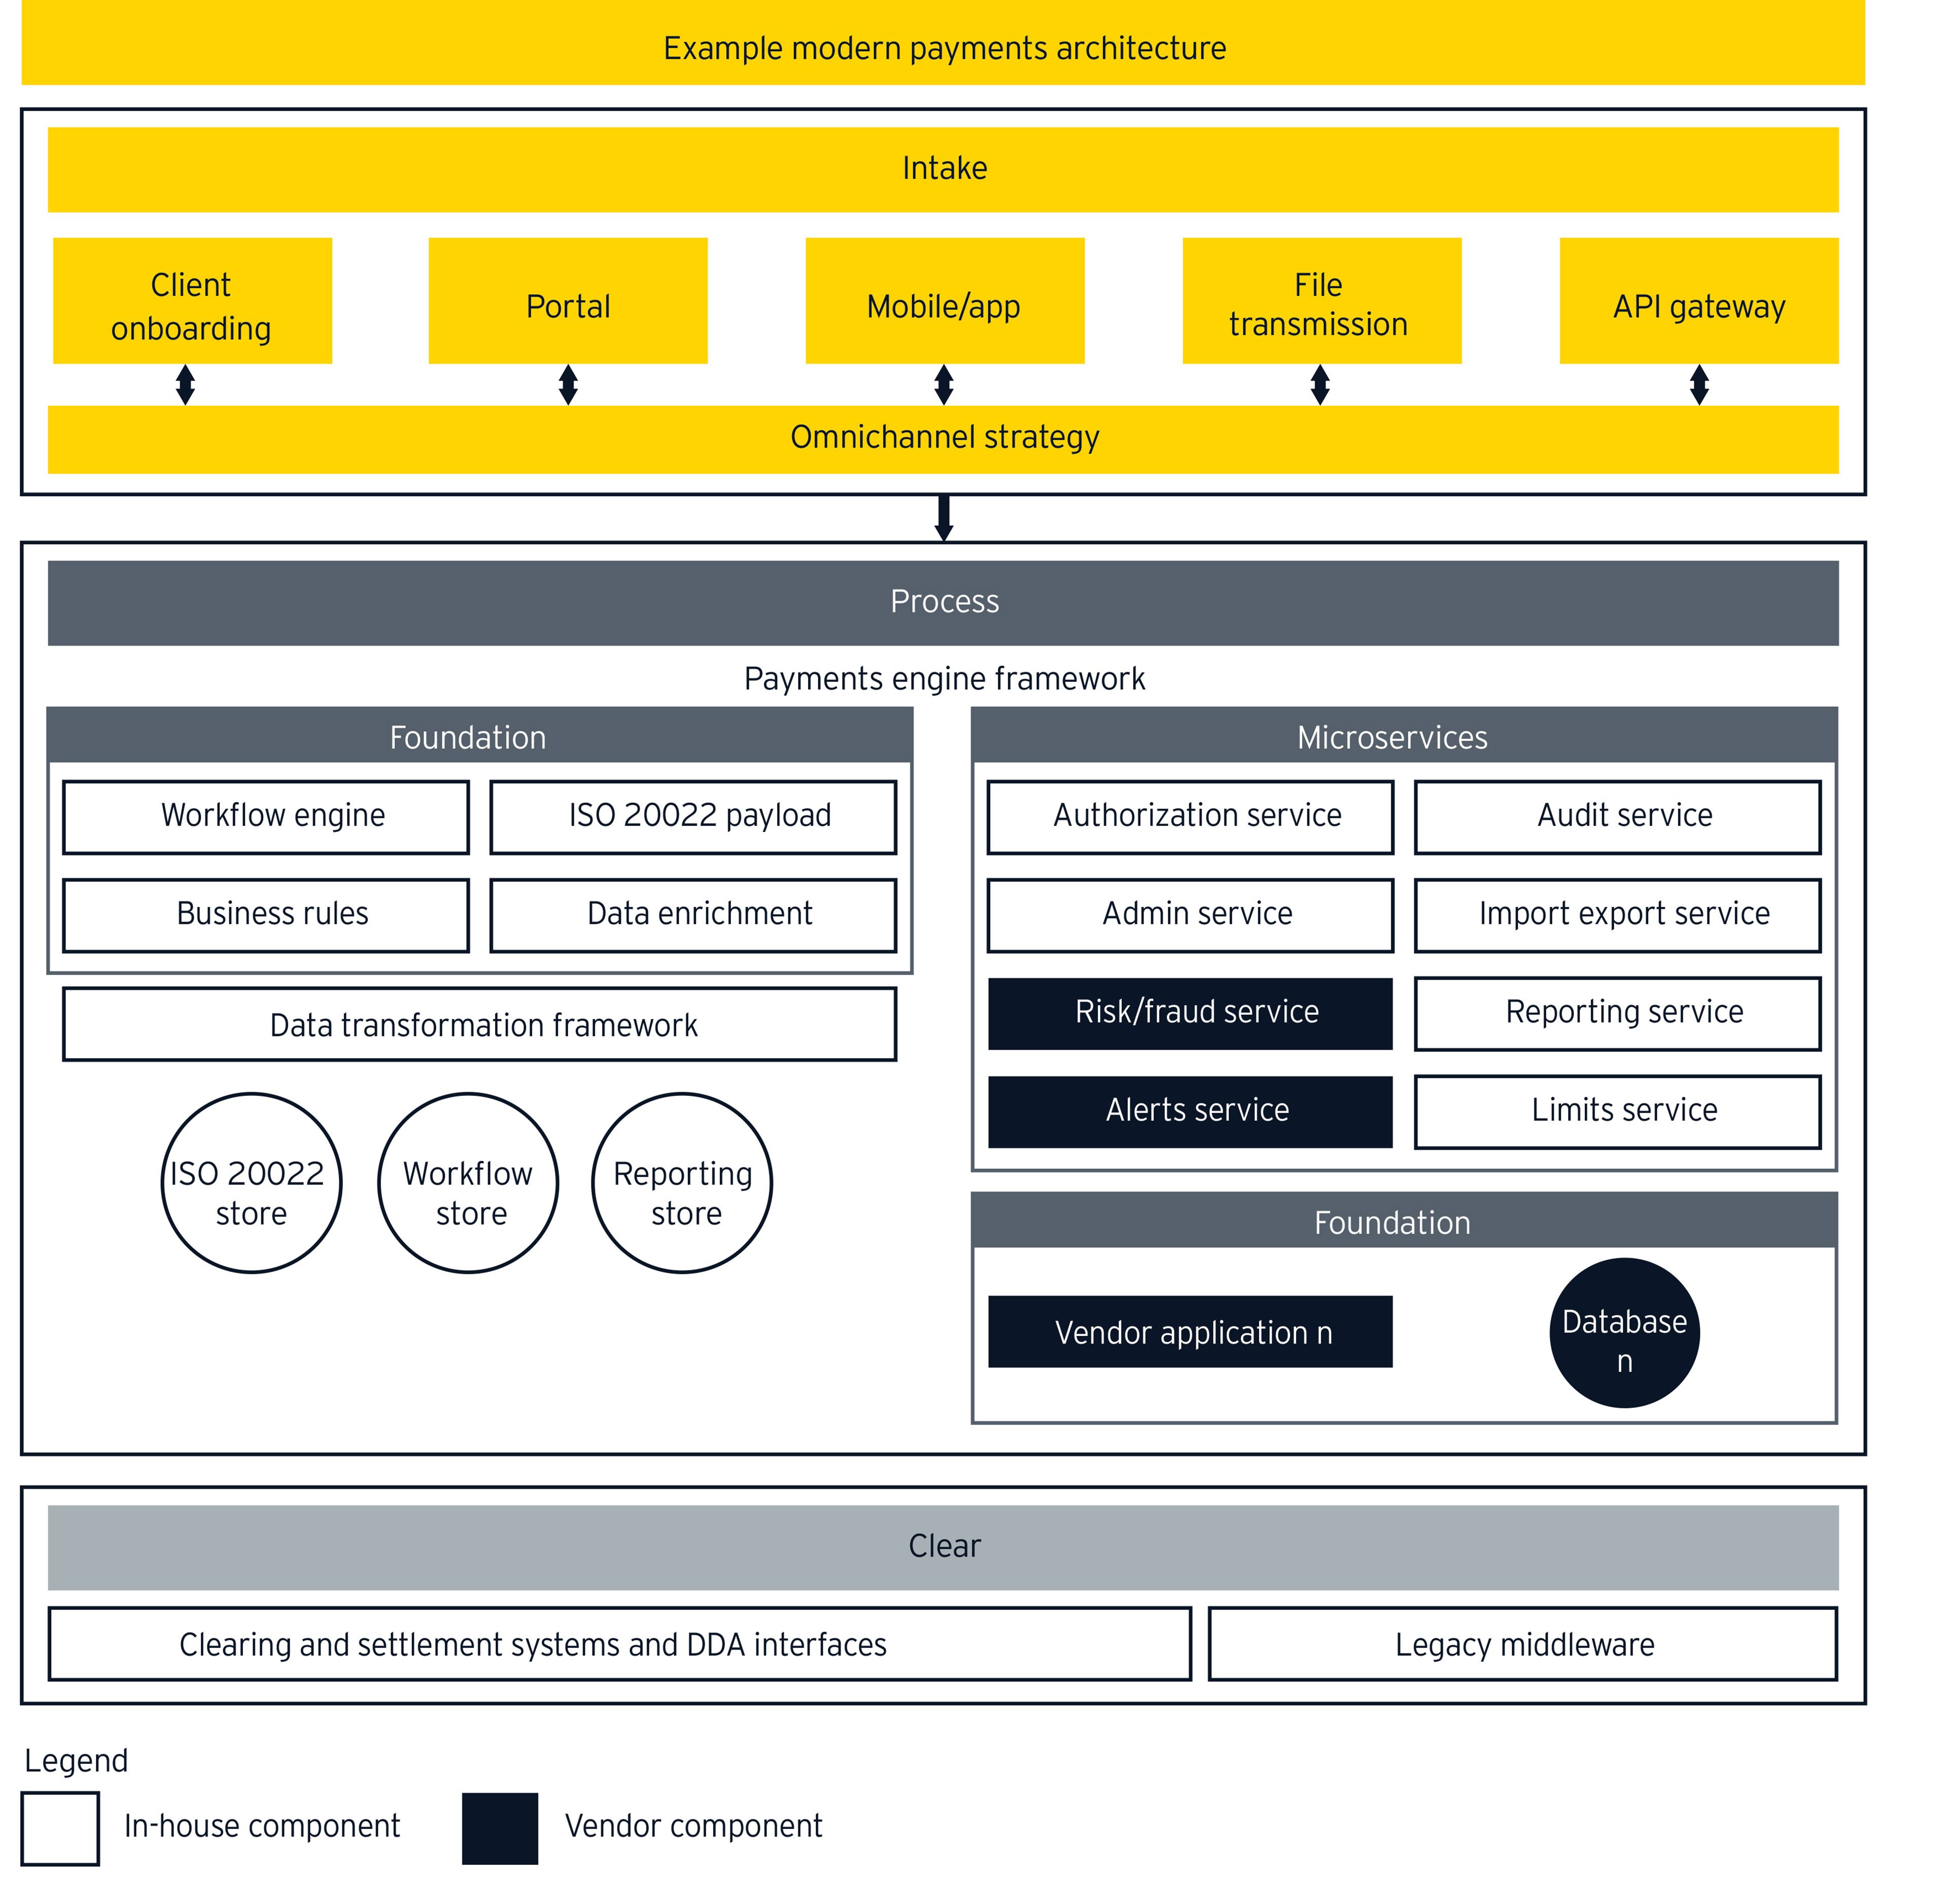 Modern payments architecture